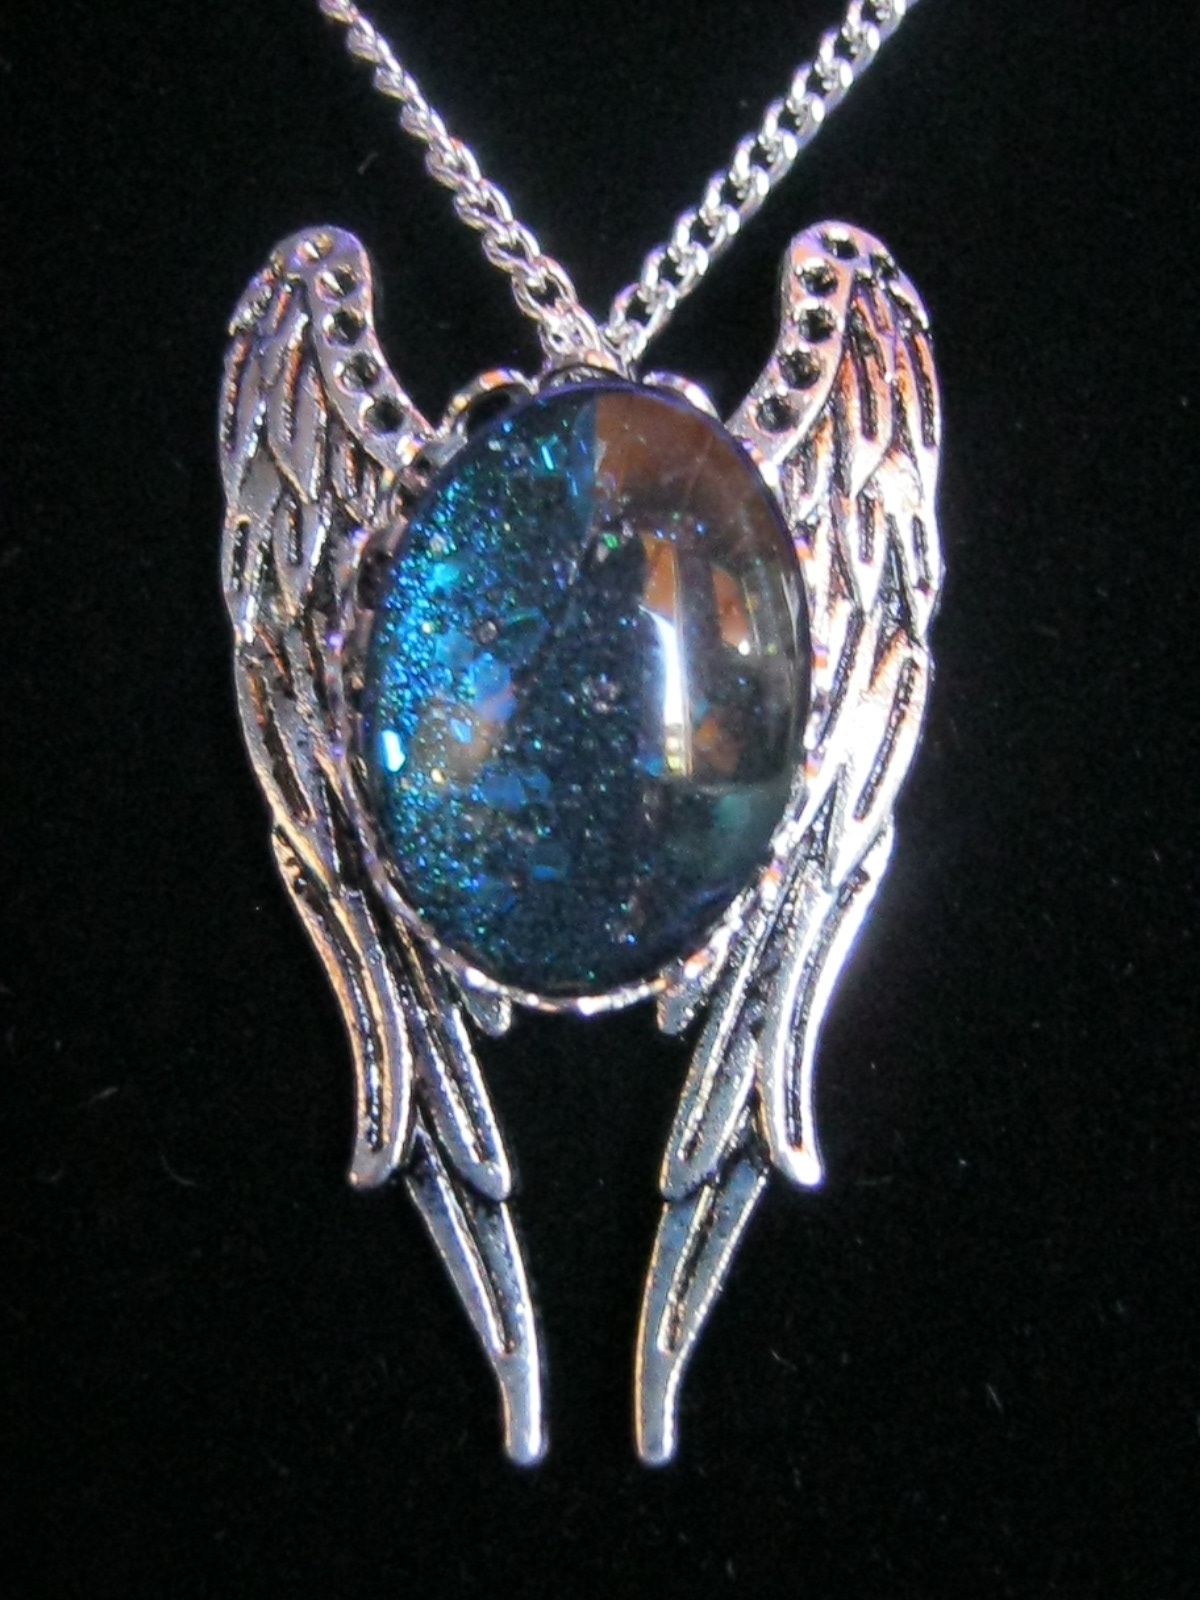 necklace_blue_glitter_stone_wings_chain_necklaces_2.JPG